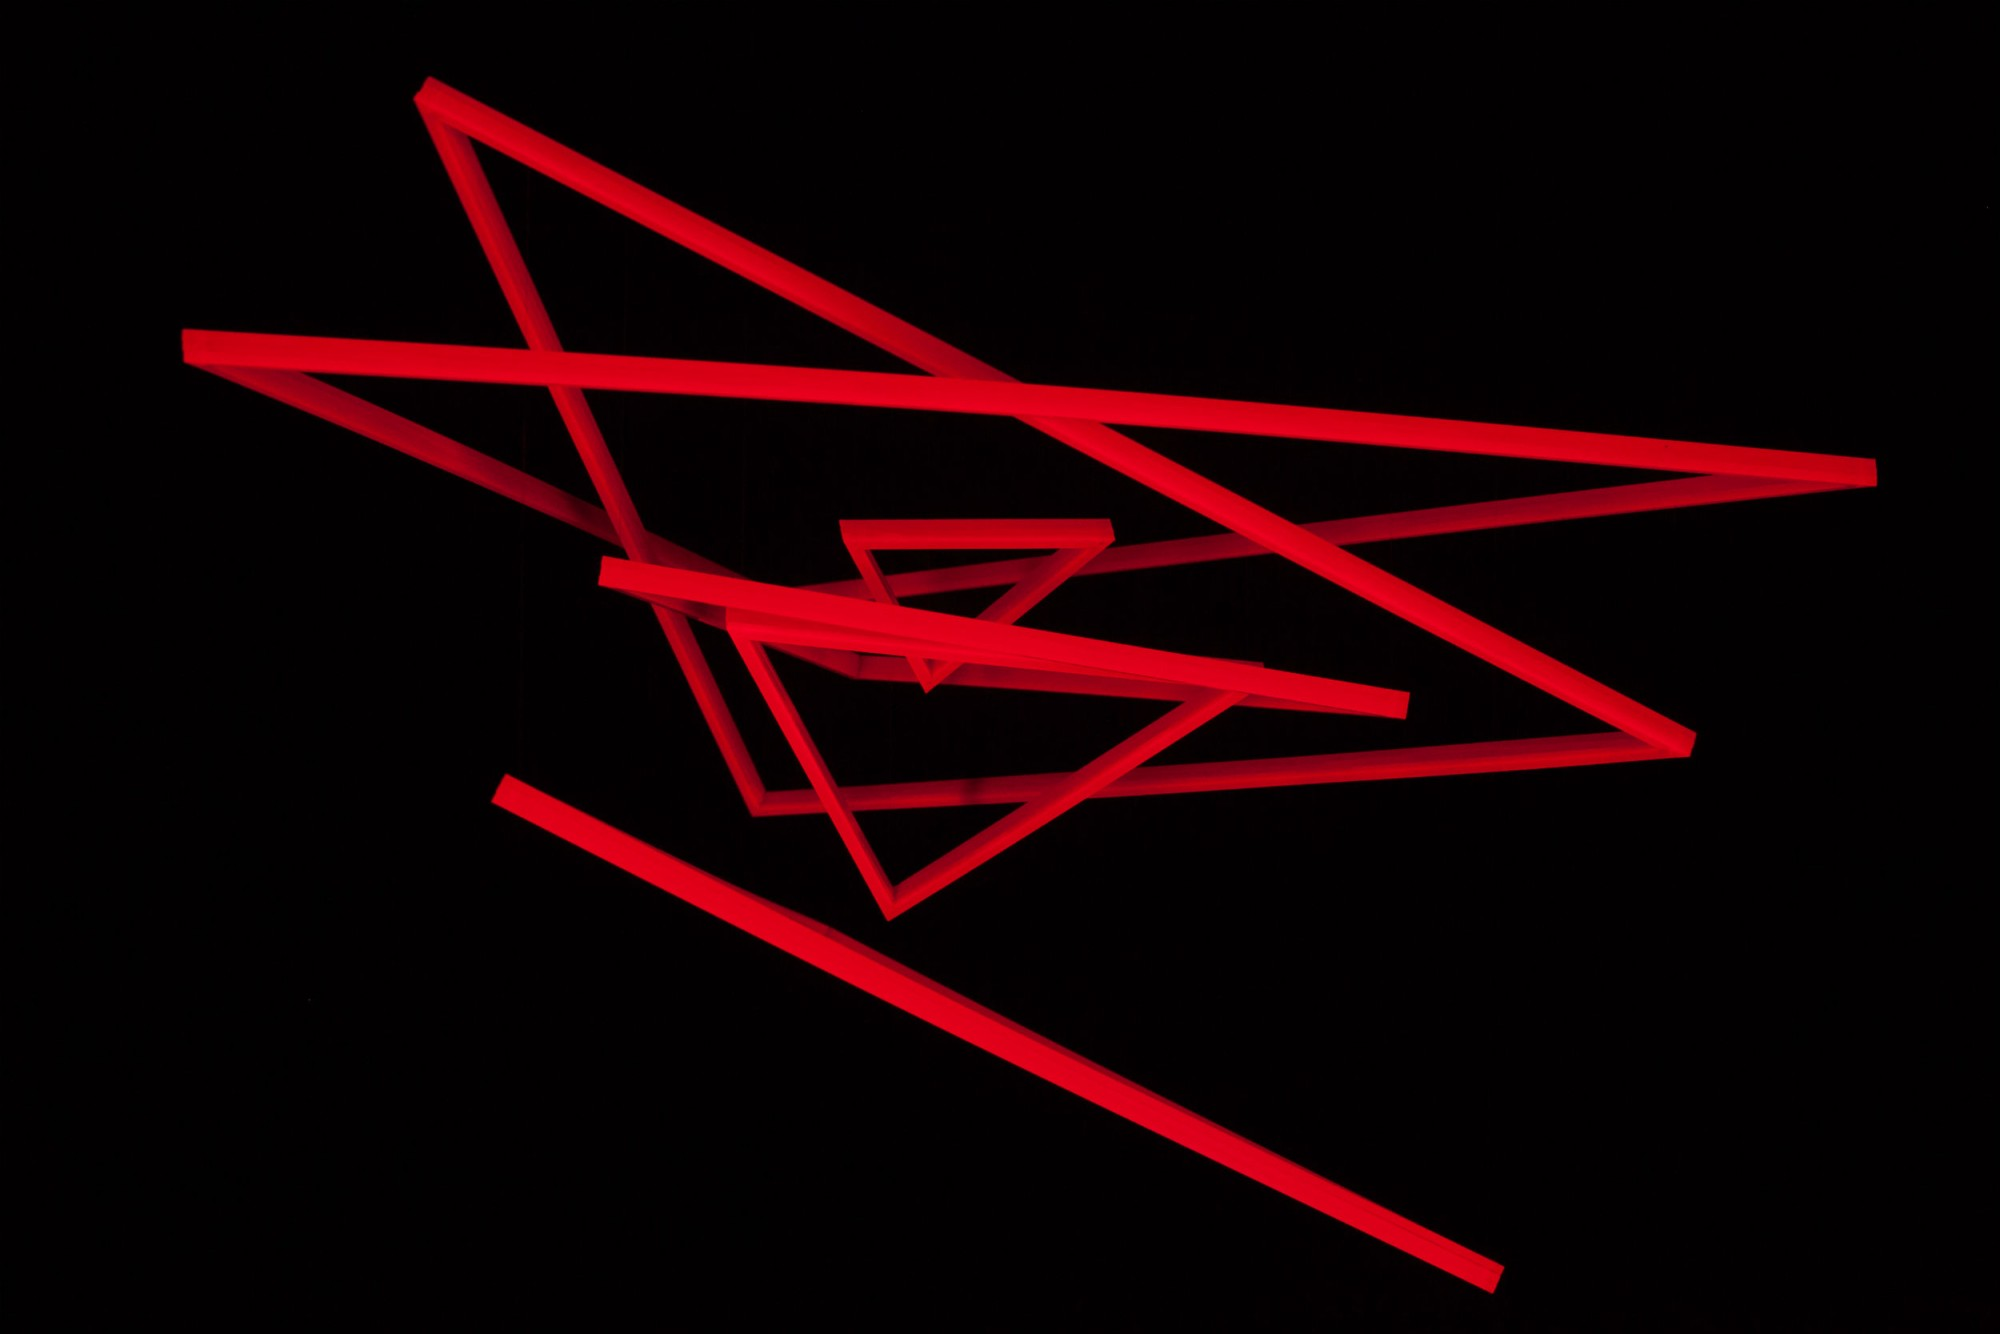 Trianguconcentricos_Rouge_Fluo_2.jpg